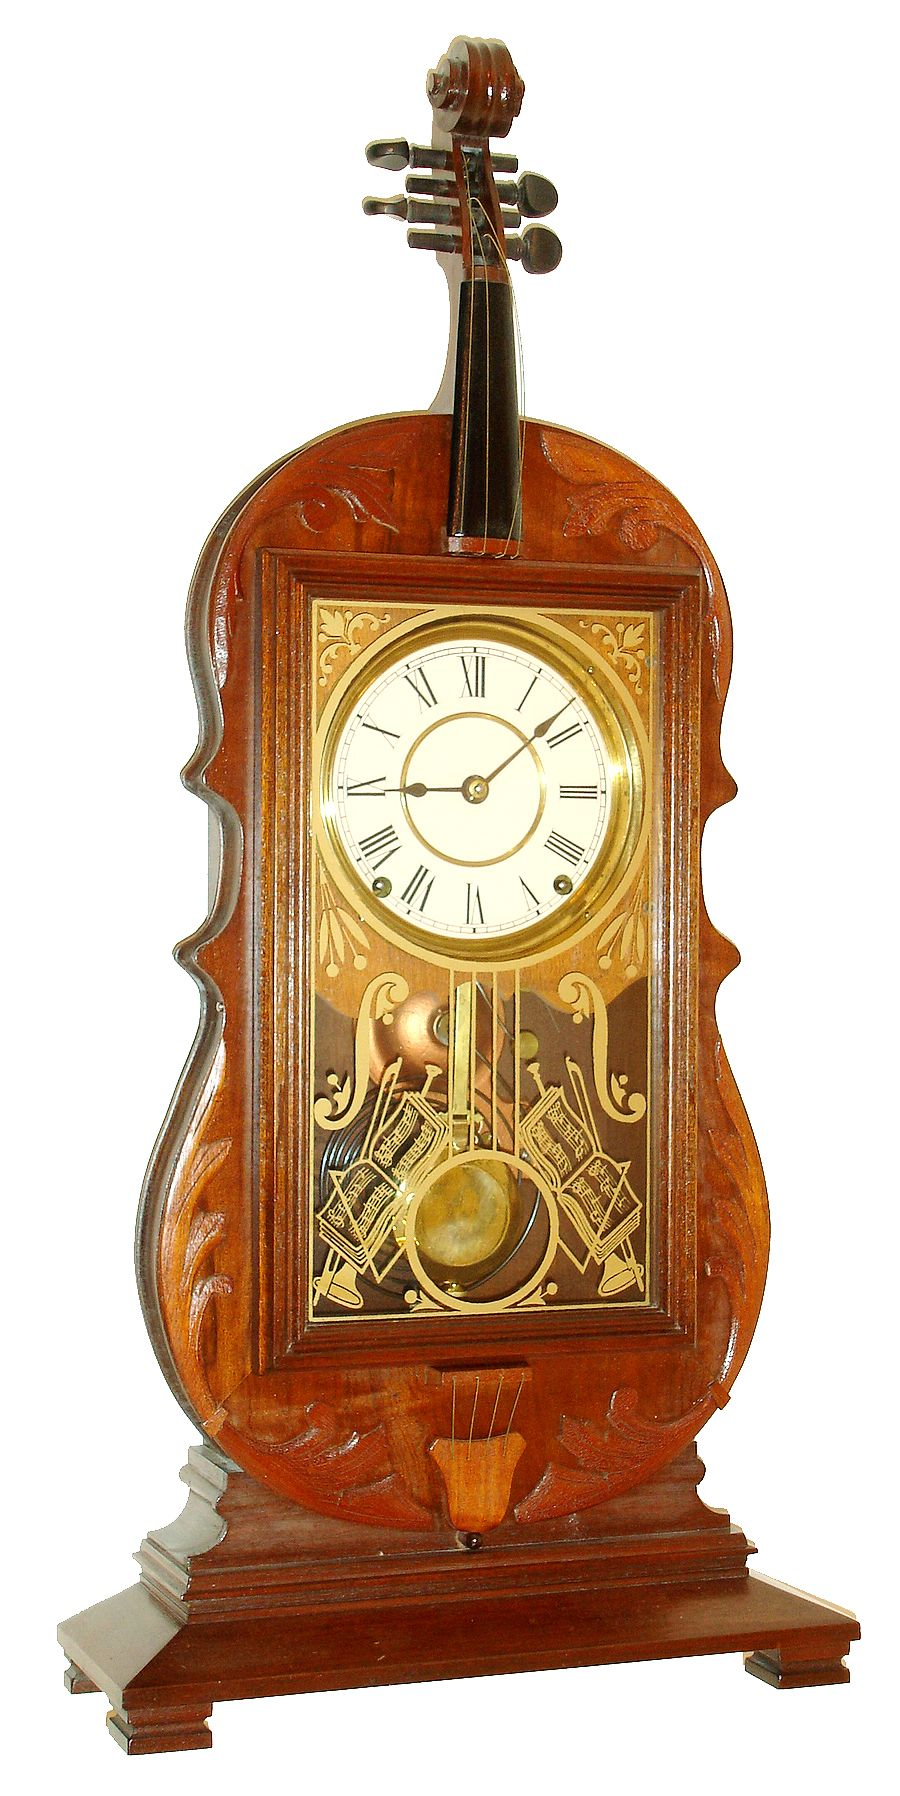 Swedish Clock Reproduction Reproduction Seth Thomas Violin Mantel Clock 8 Days Time And